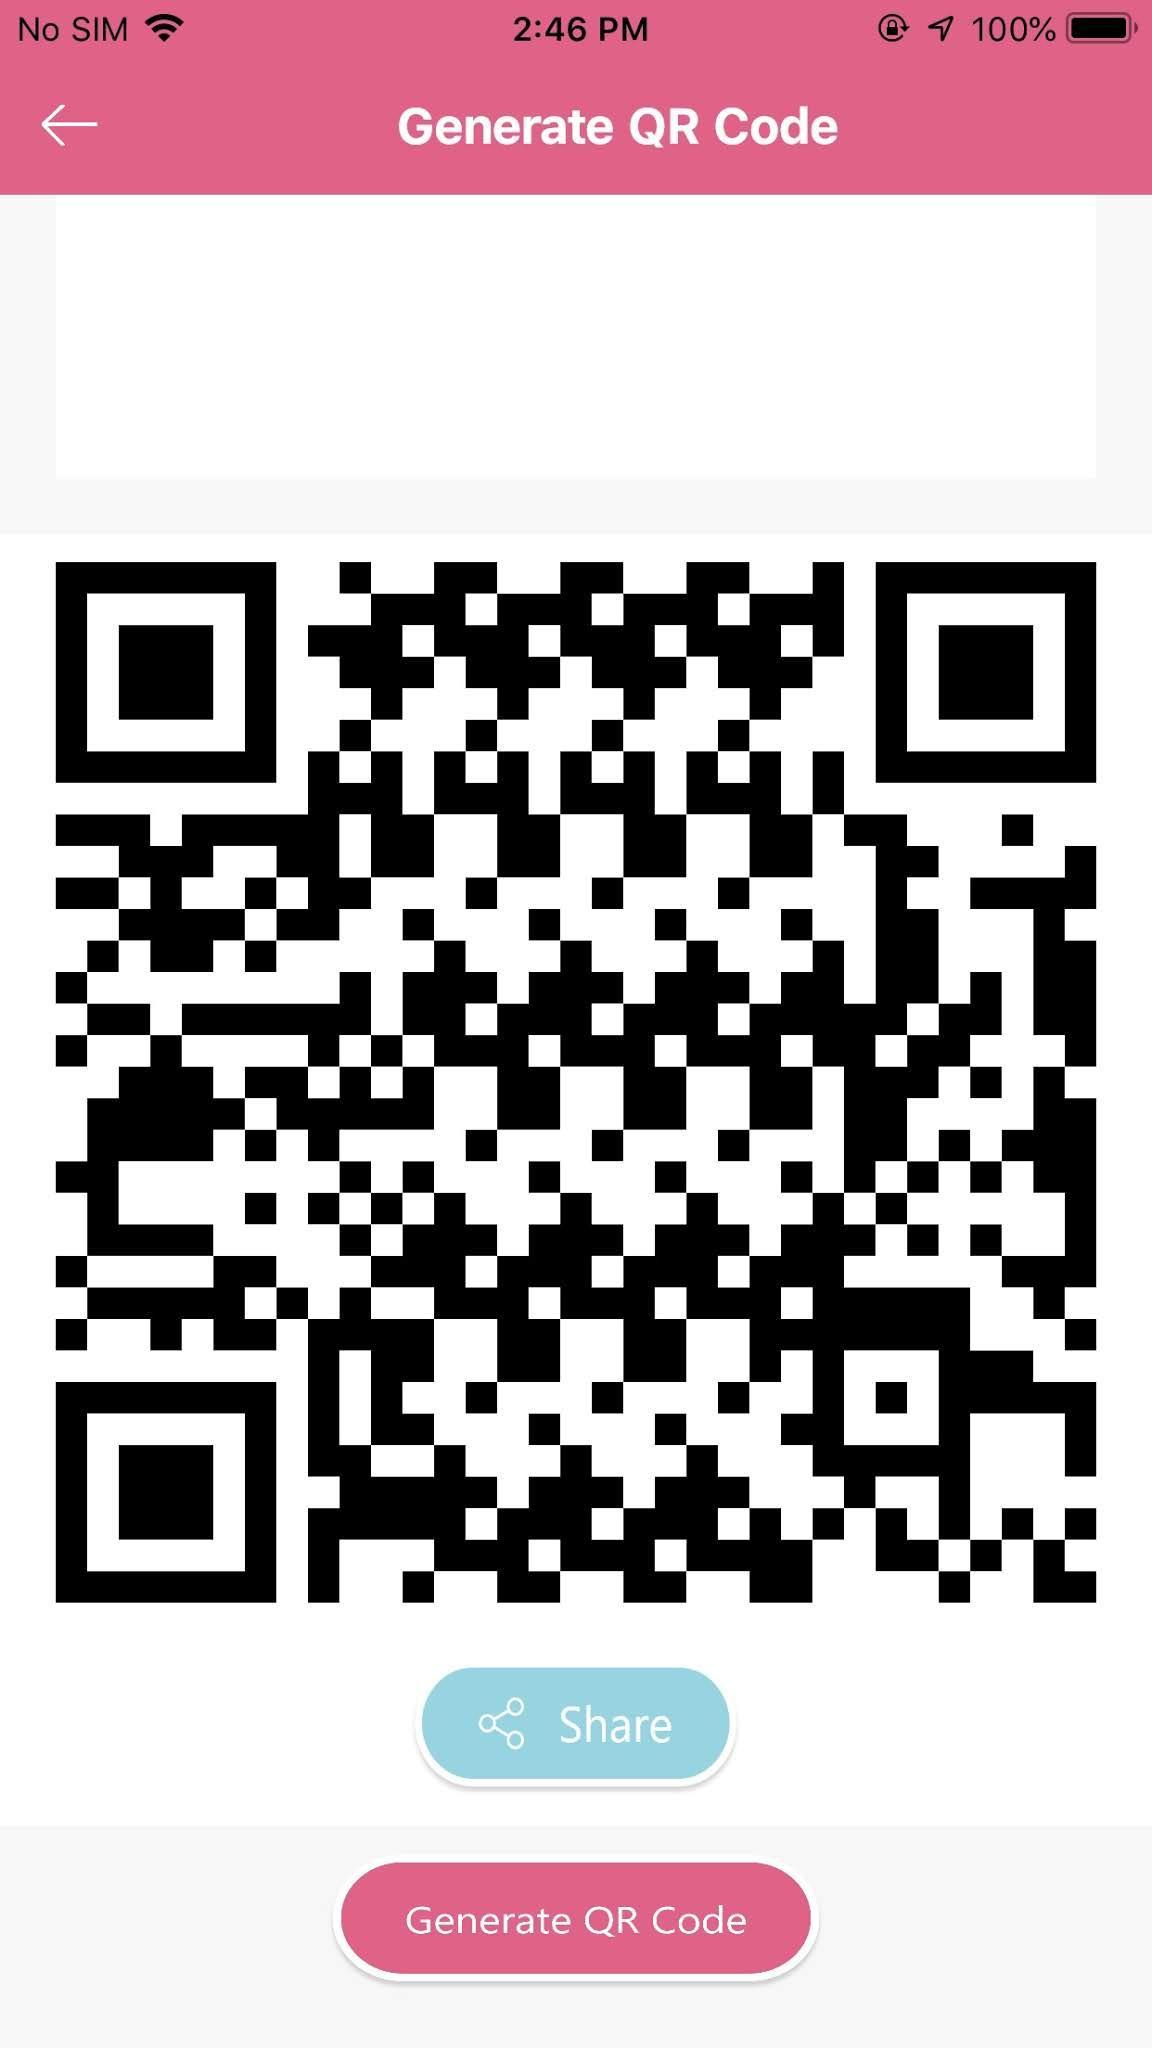 Qscan 🆓 QR Code Reader - Generate, Scan or Share for